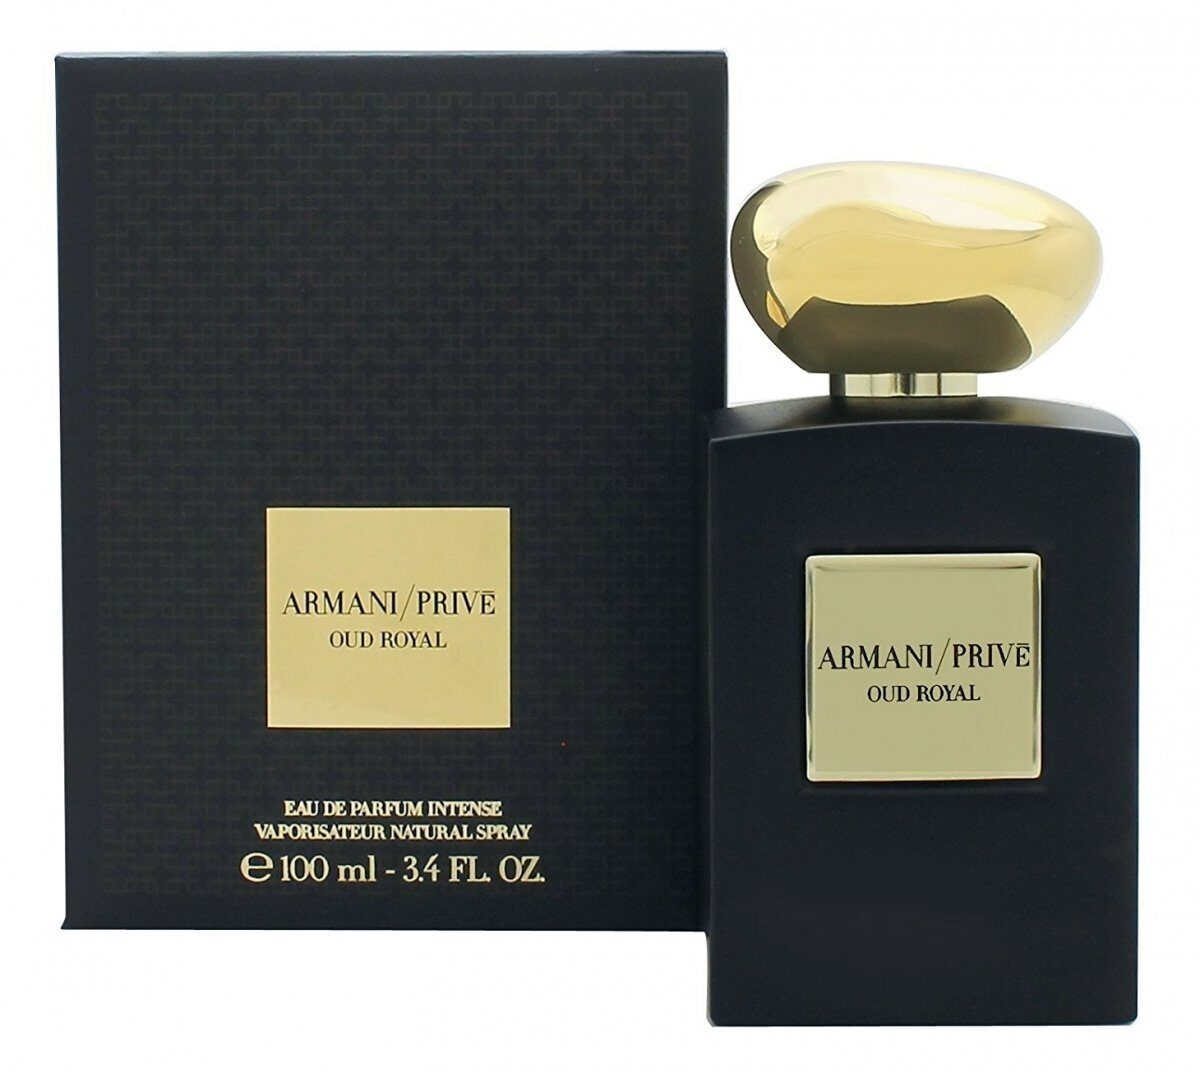 ARMANI/PRIVE OUD ROYAL 100ML